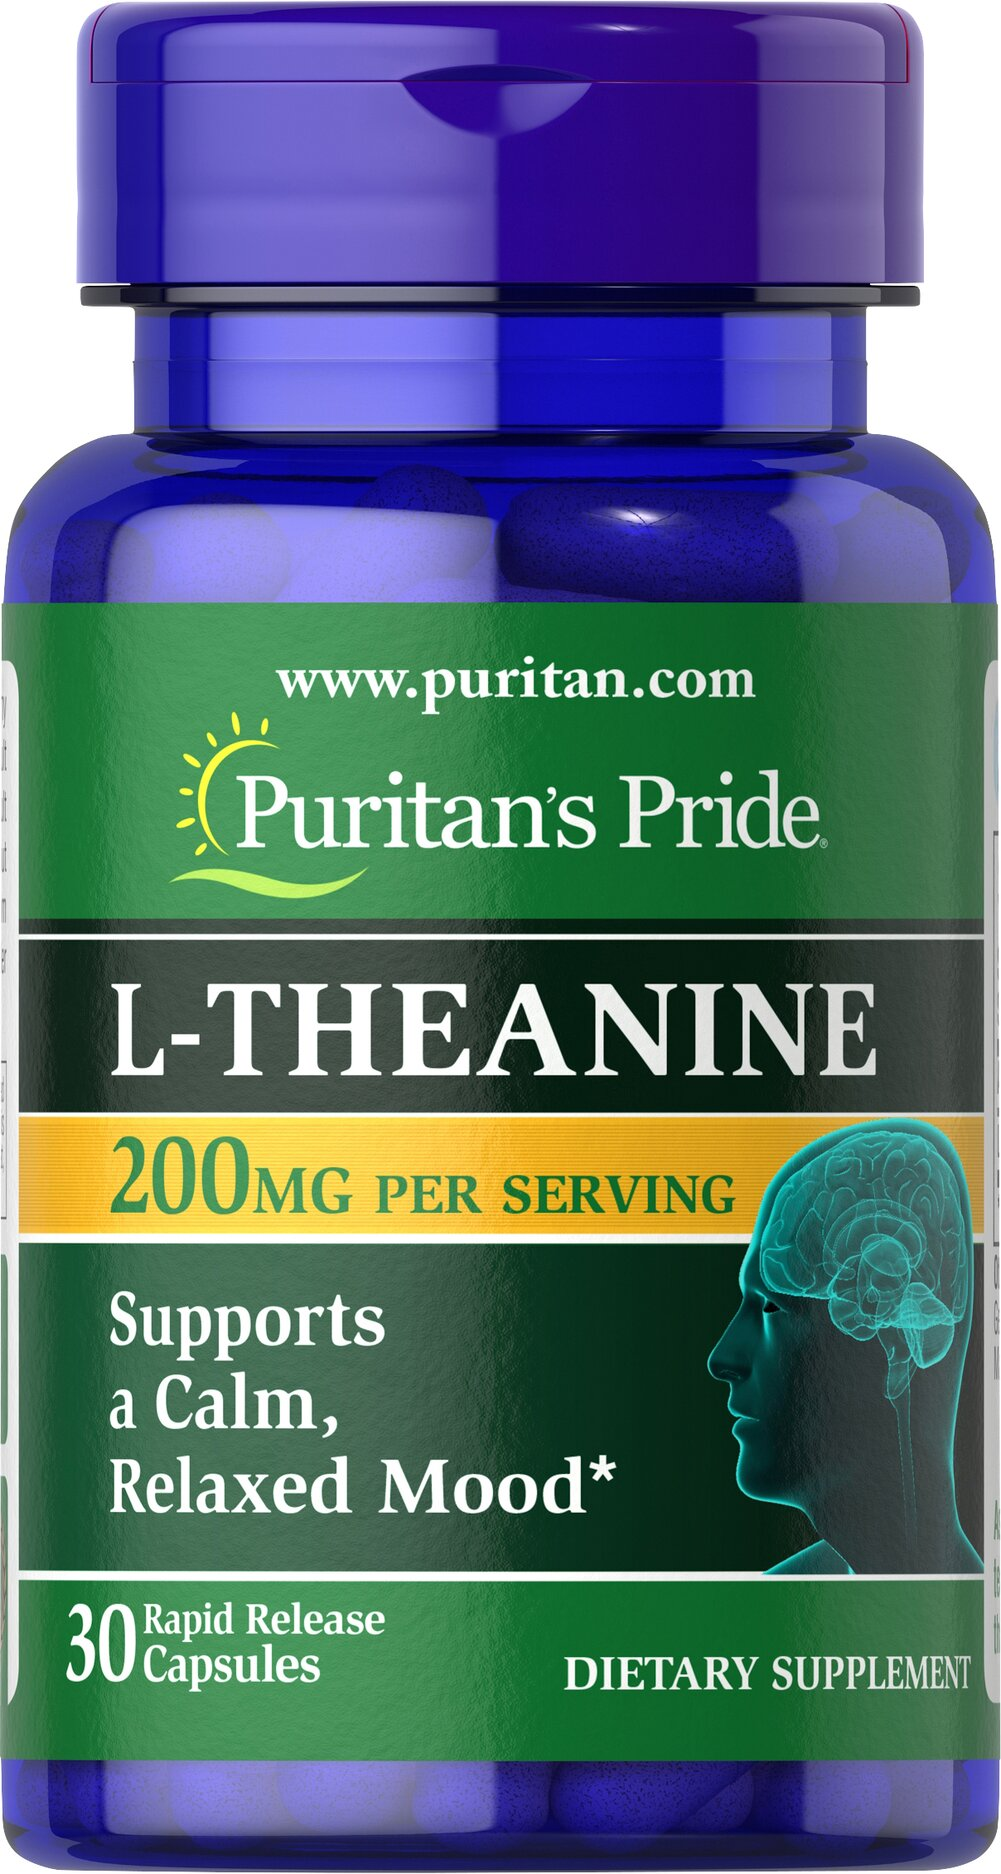 L-Theanine 100 mg <p>A close relative of Glutamate, studies indicate that L-Theanine interacts with the neurotransmitter, GABA (gammaminobutyrate).** GABA, known for its importance in nervous system functioning, works with the mood centers of the brain.** Studies in Japan show that L-Theanine helps support the body's ability to deal with PMS and occasional, everyday anxiety.**</p> 30 Capsules 200 mg $8.99